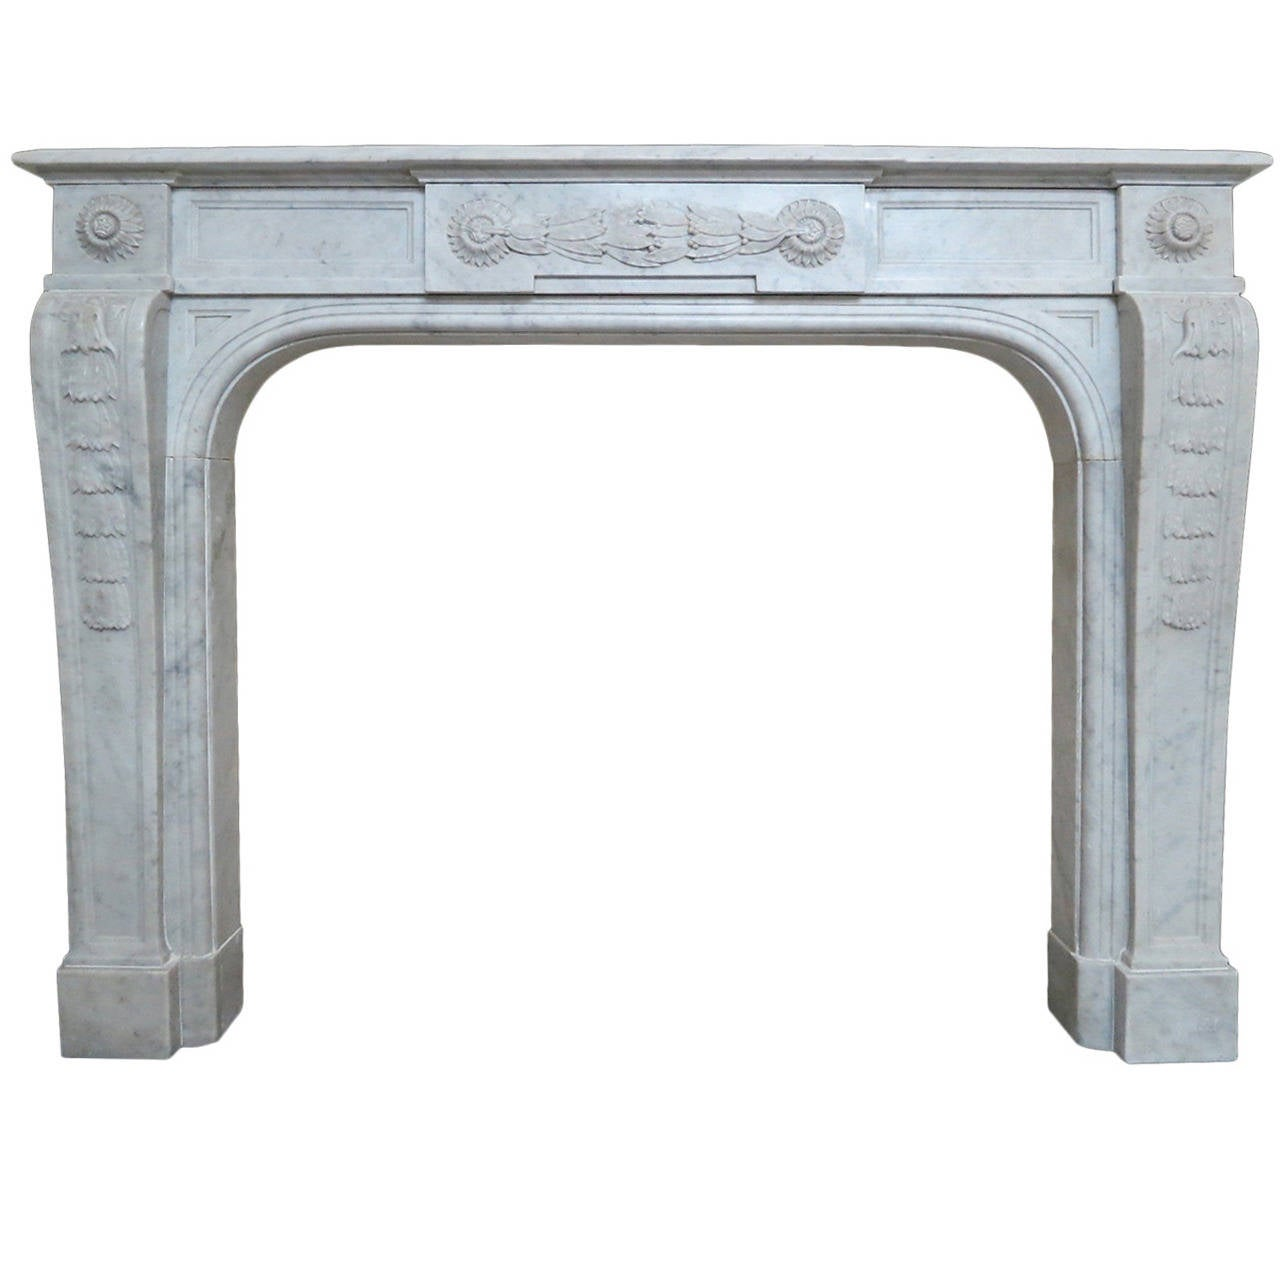 Antique French Louis Xvi Style Fireplace Mantel In Carrara Marble At 1stdibs